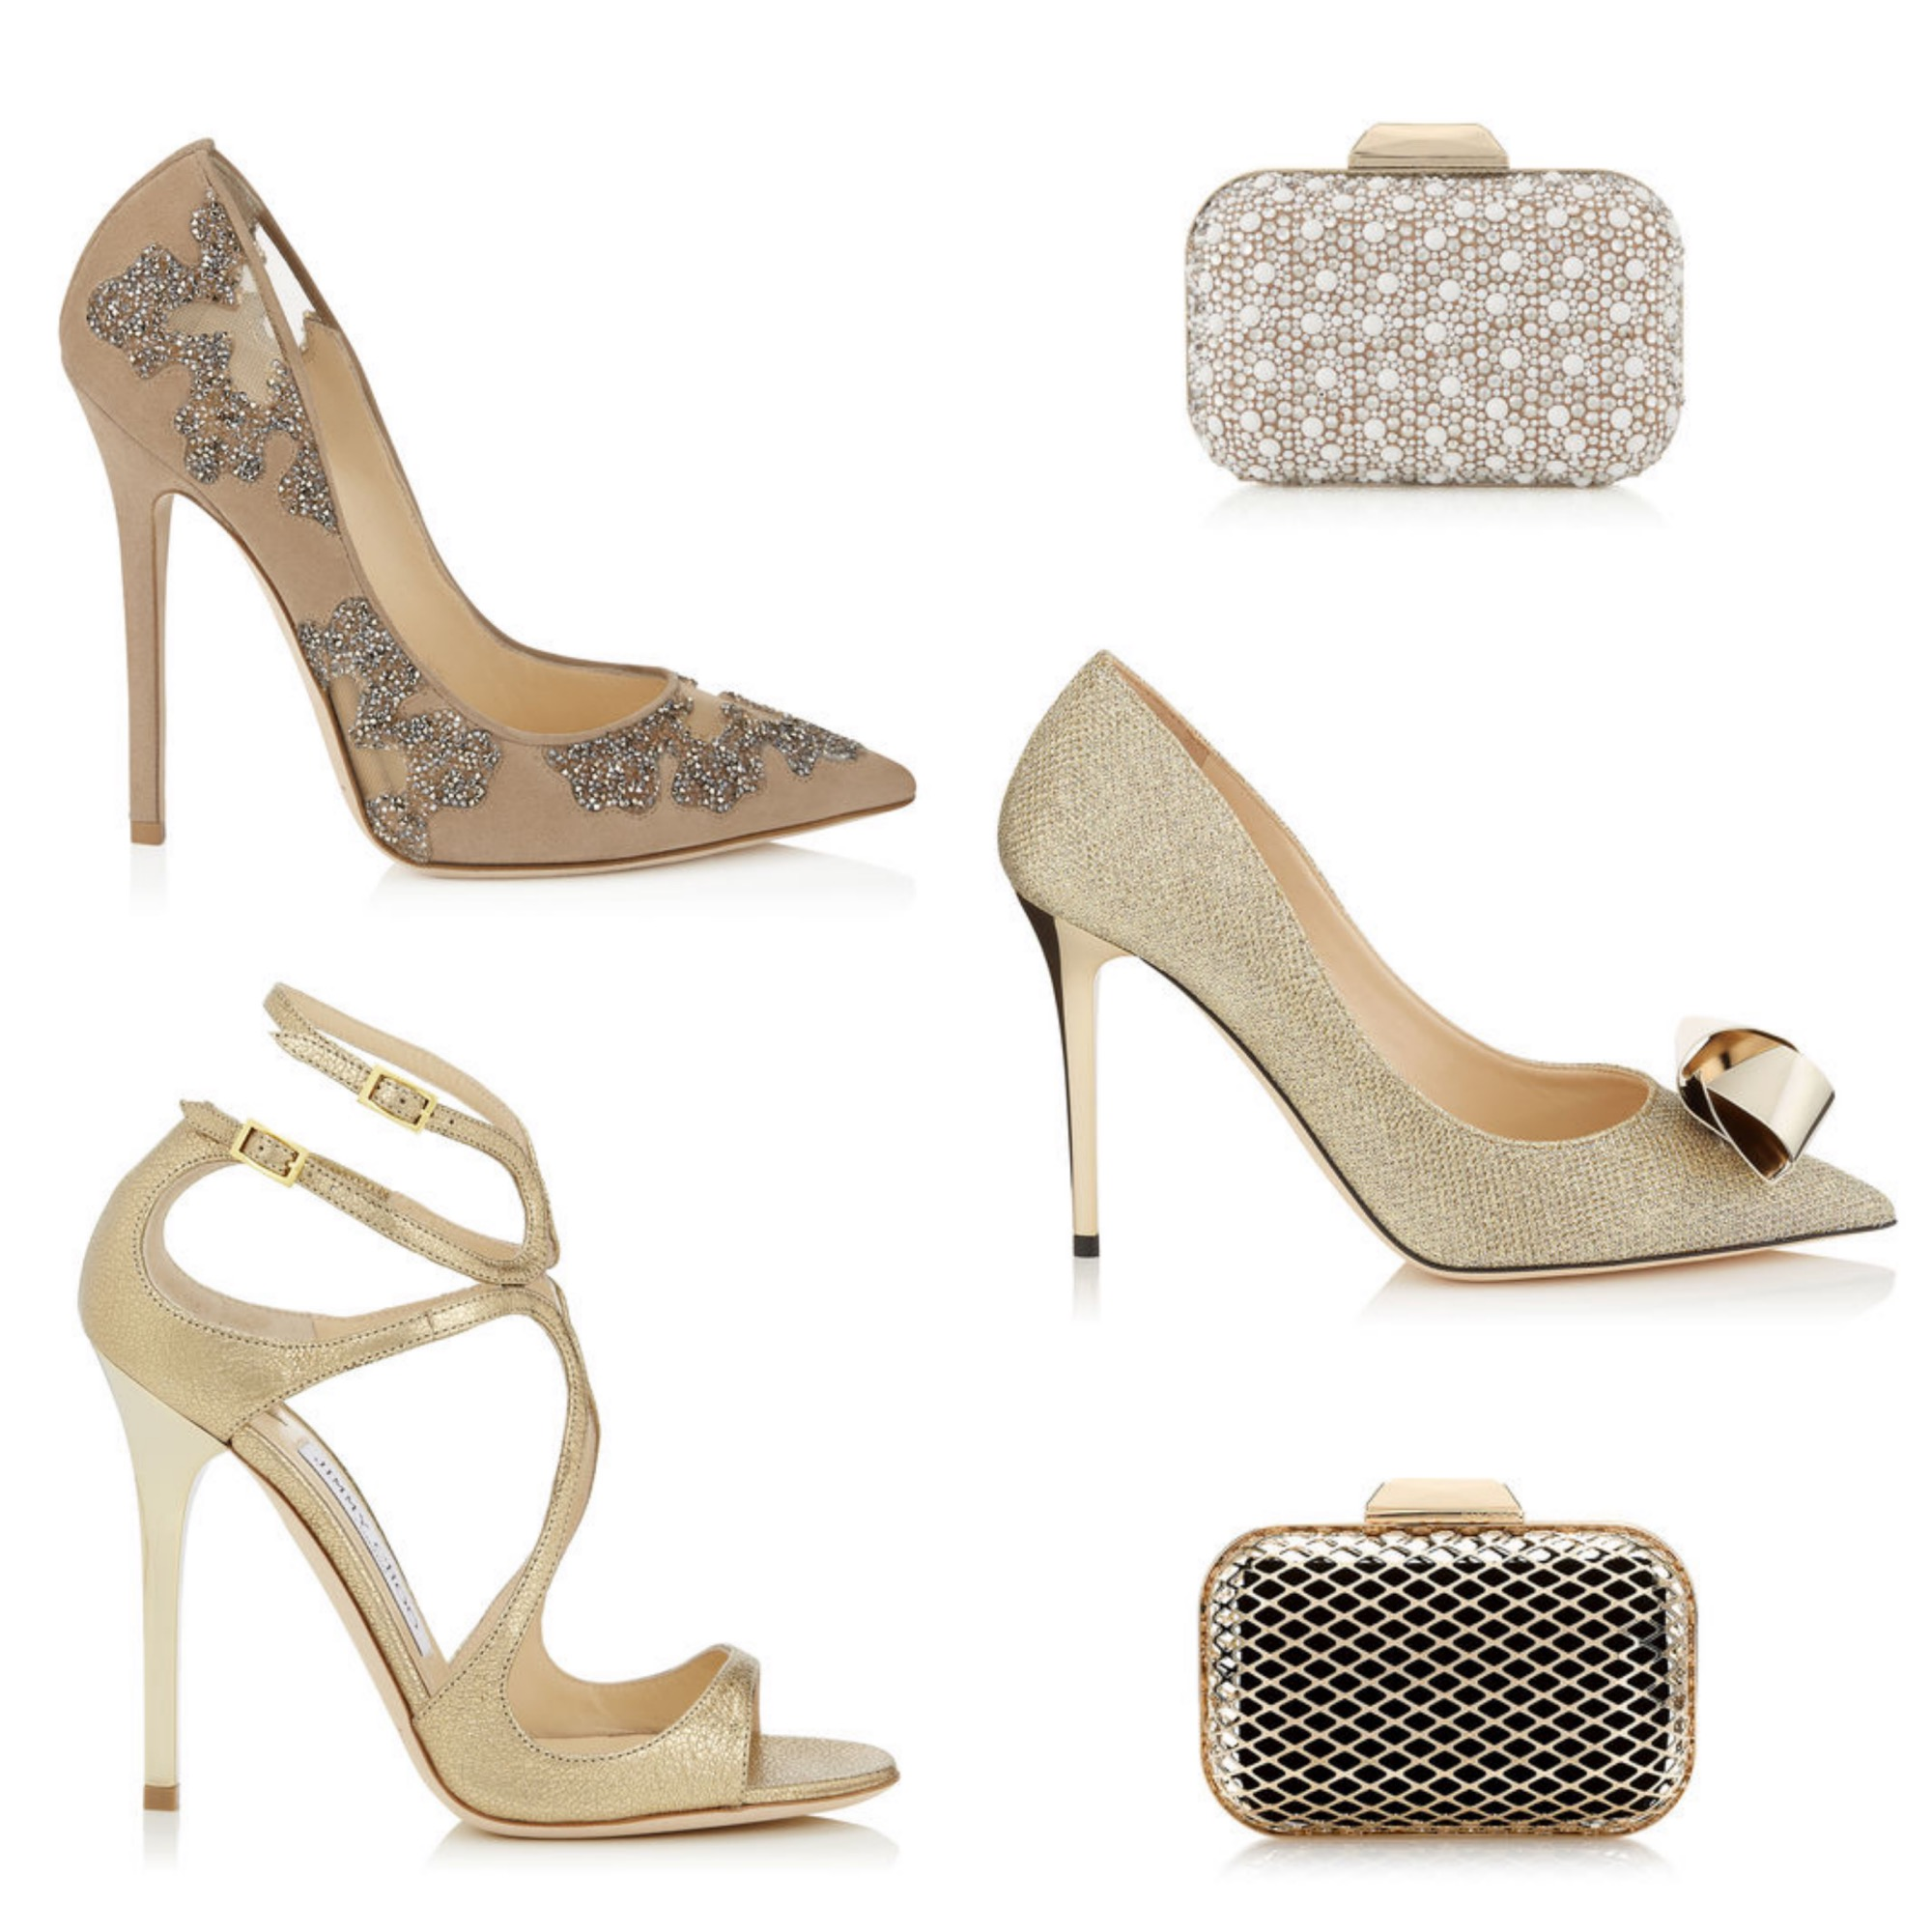 Golden shoes & Clutches for the Holiday Season - Jimmy Choo